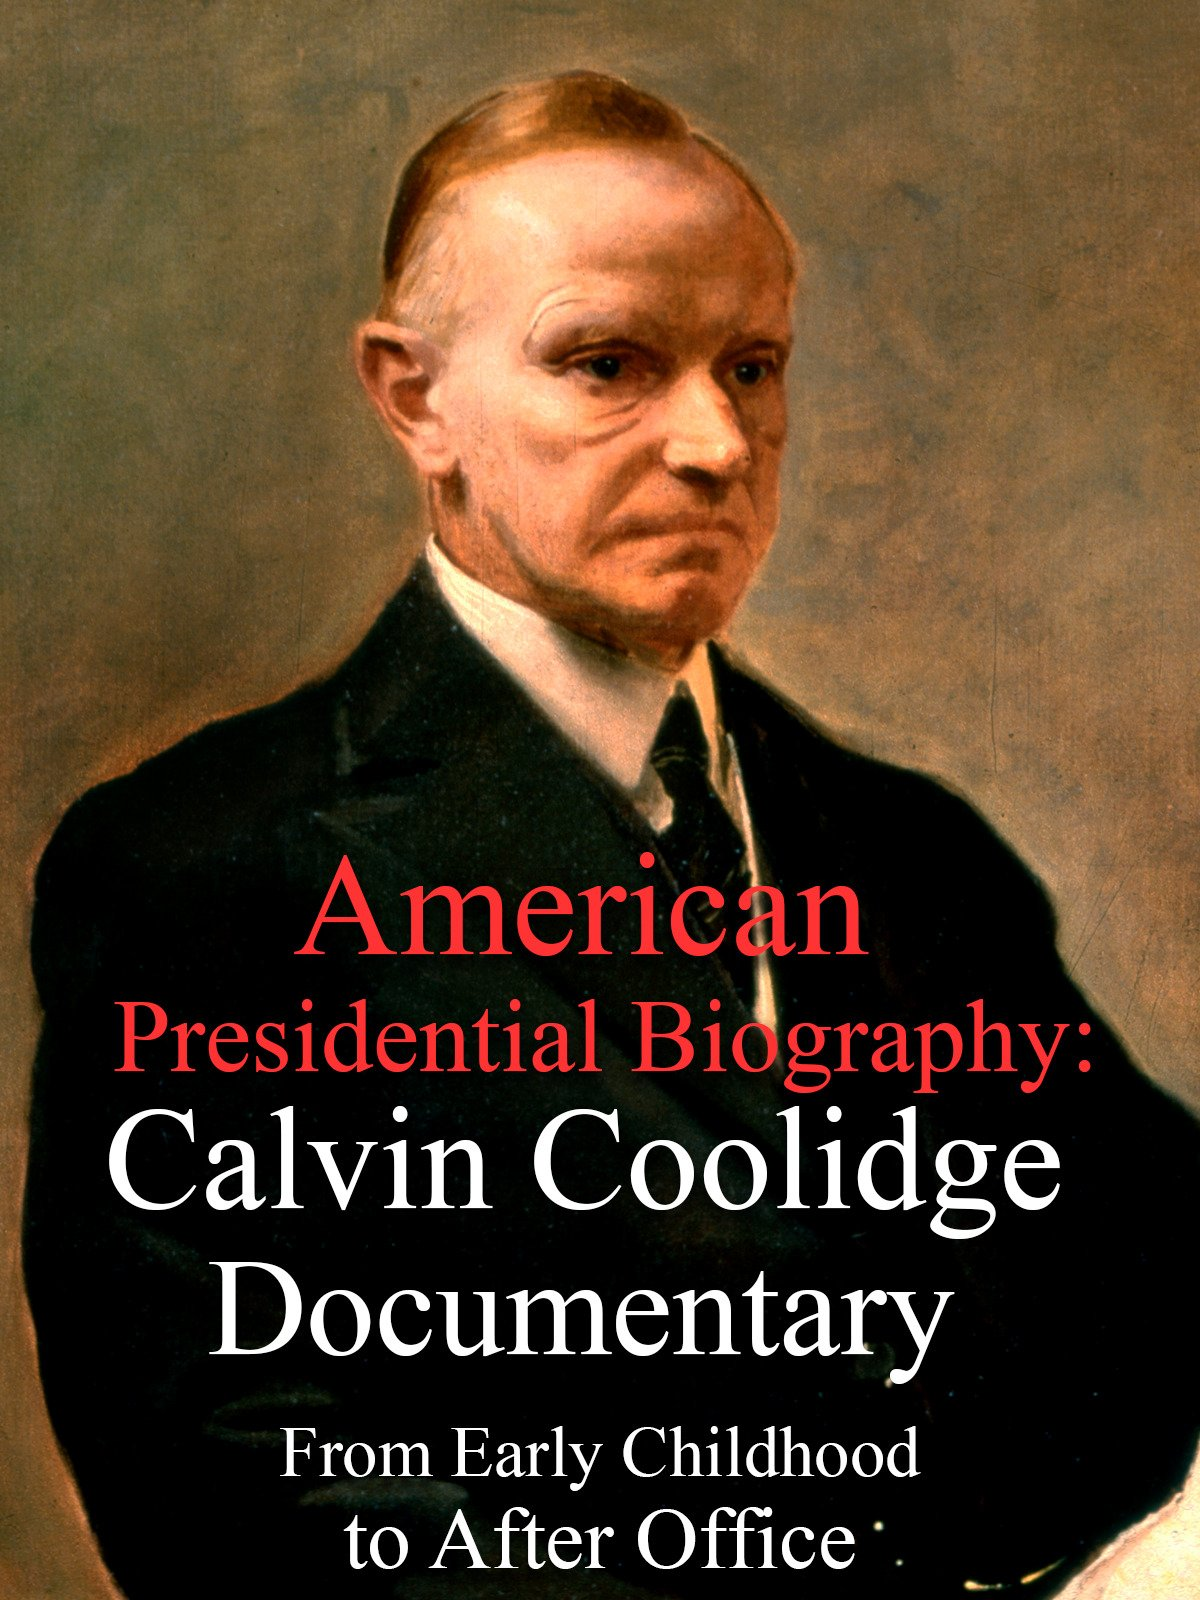 American Presidential Biography: Calvin Coolidge Documentary From Early Childhood to After Office